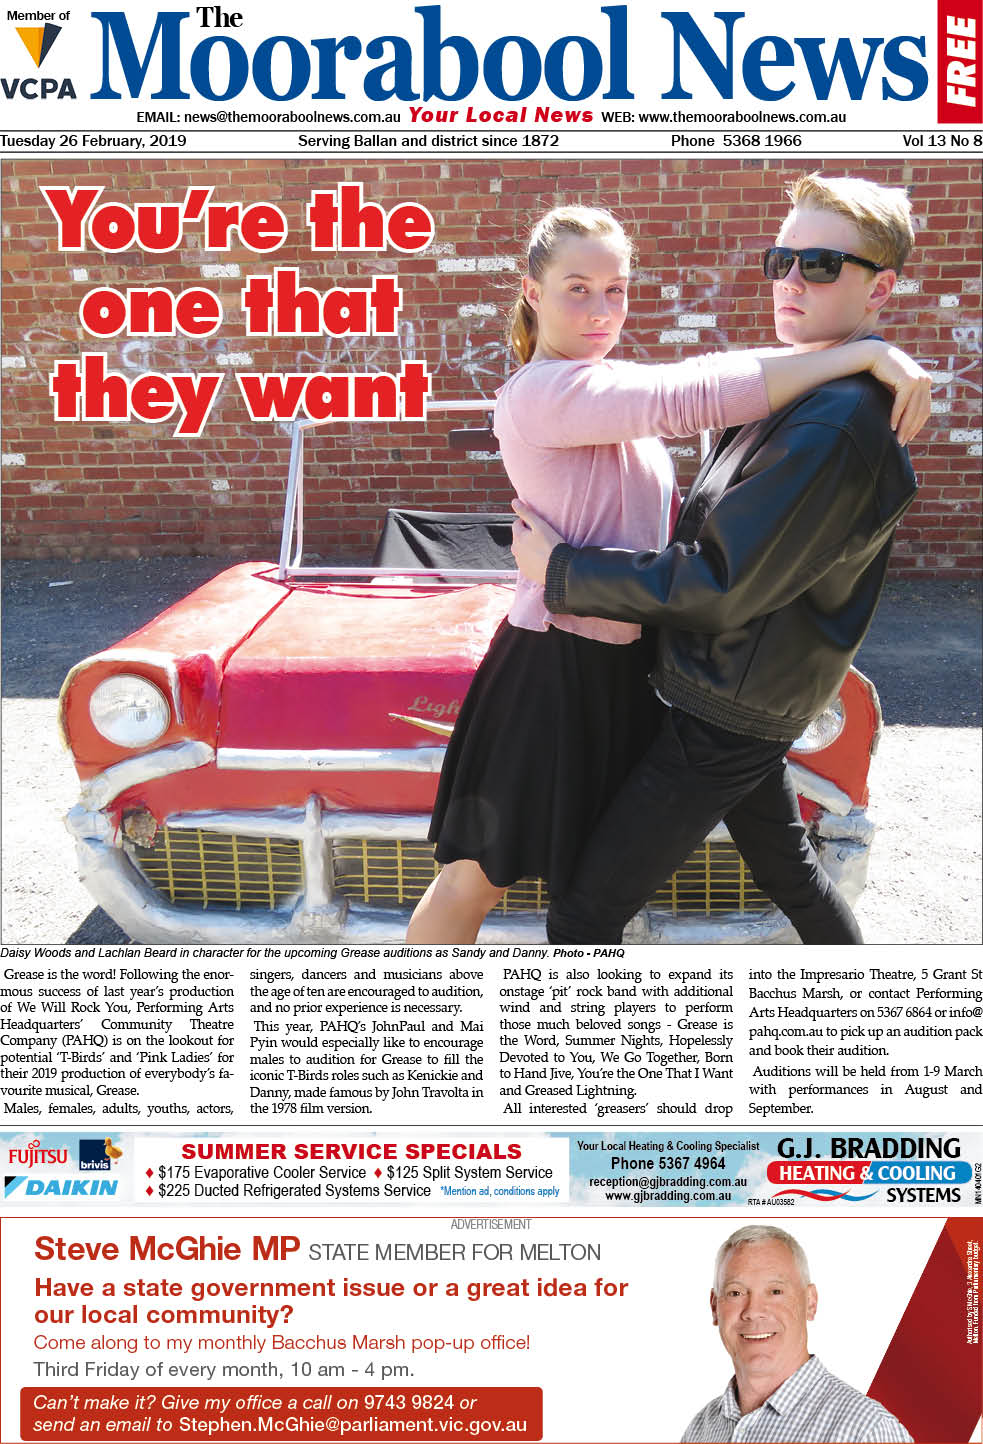 The Moorabool News 26 Feb 2019